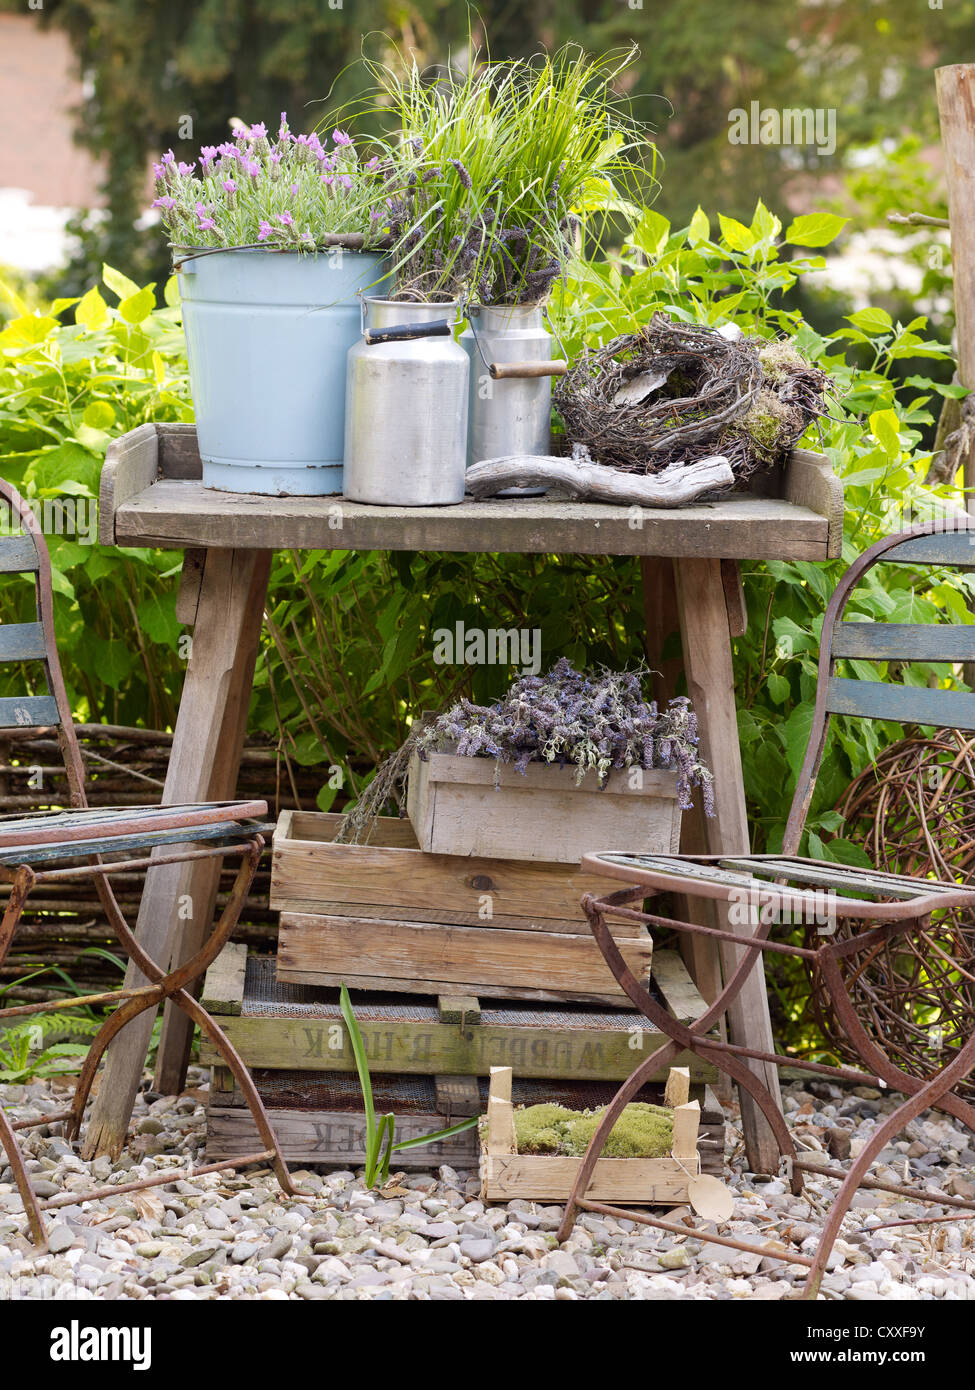 Exceptionnel Still Life, Decorative Garden Accessories, Metal Jugs On An Old Wooden  Table In A Romantic Garden